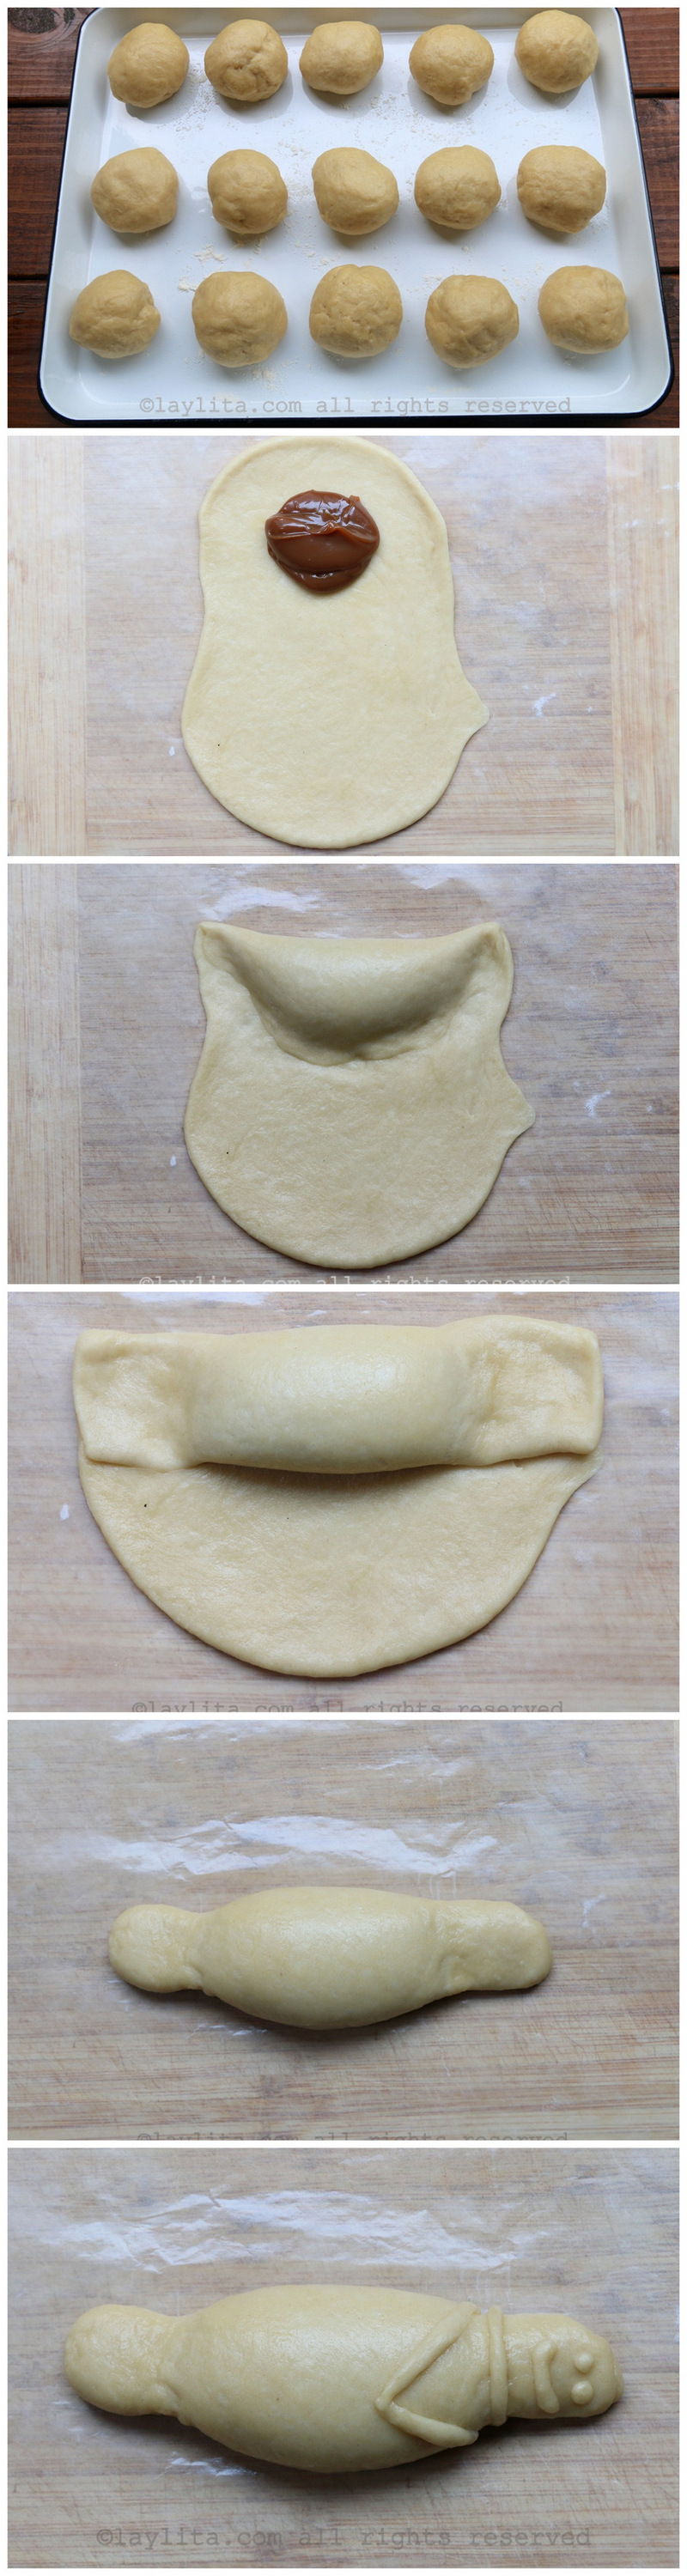 How to make guaguas de pan or bread figures with a filling